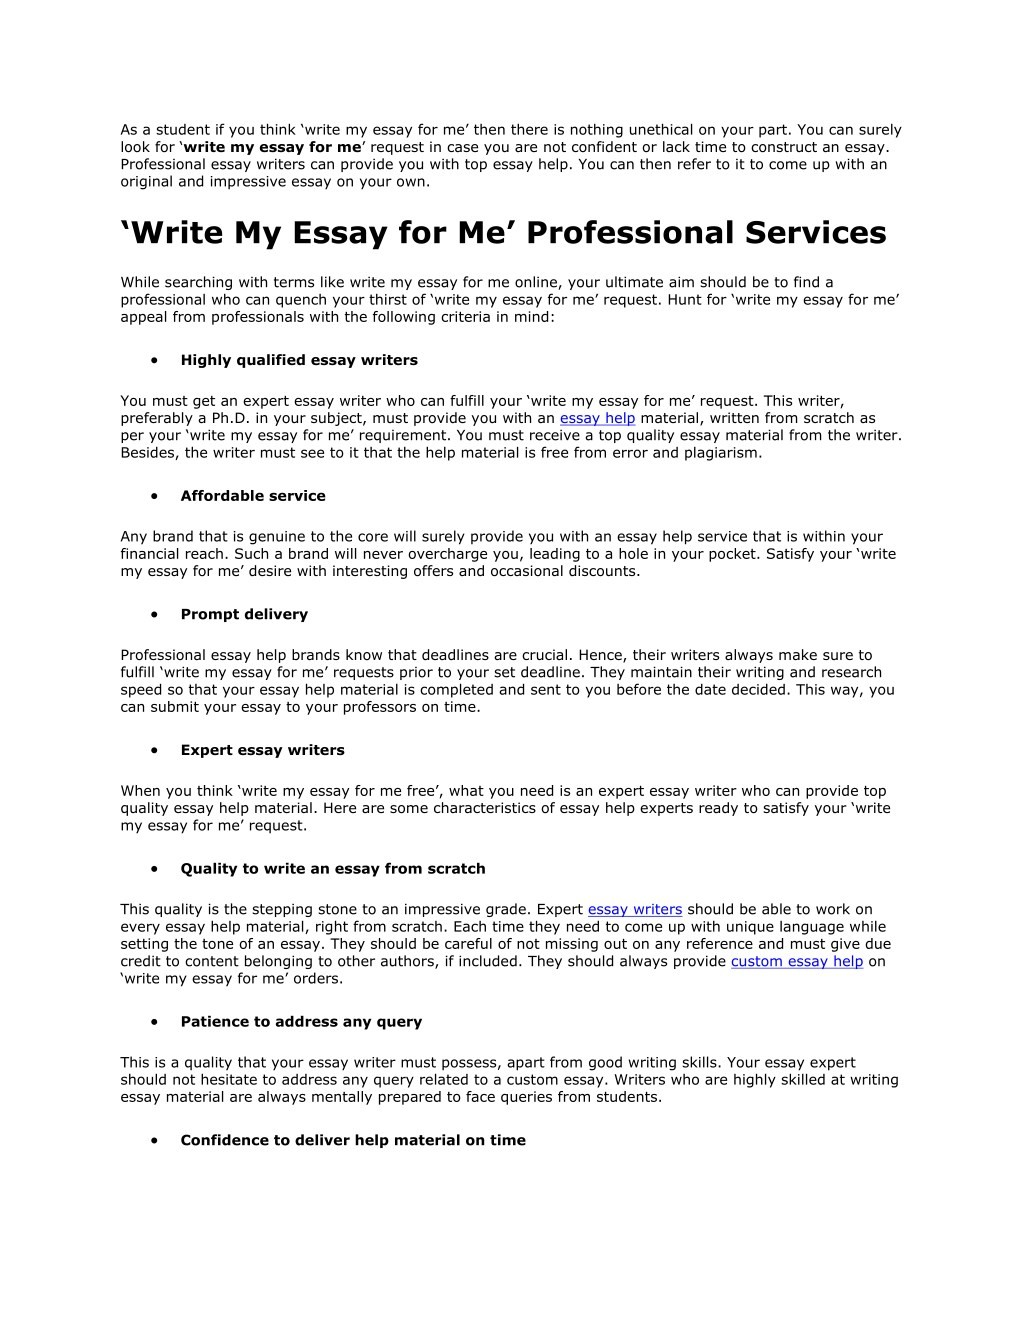 017 Write My Essay For Me Example As Student If You Think Surprising Please Canada Generator Large